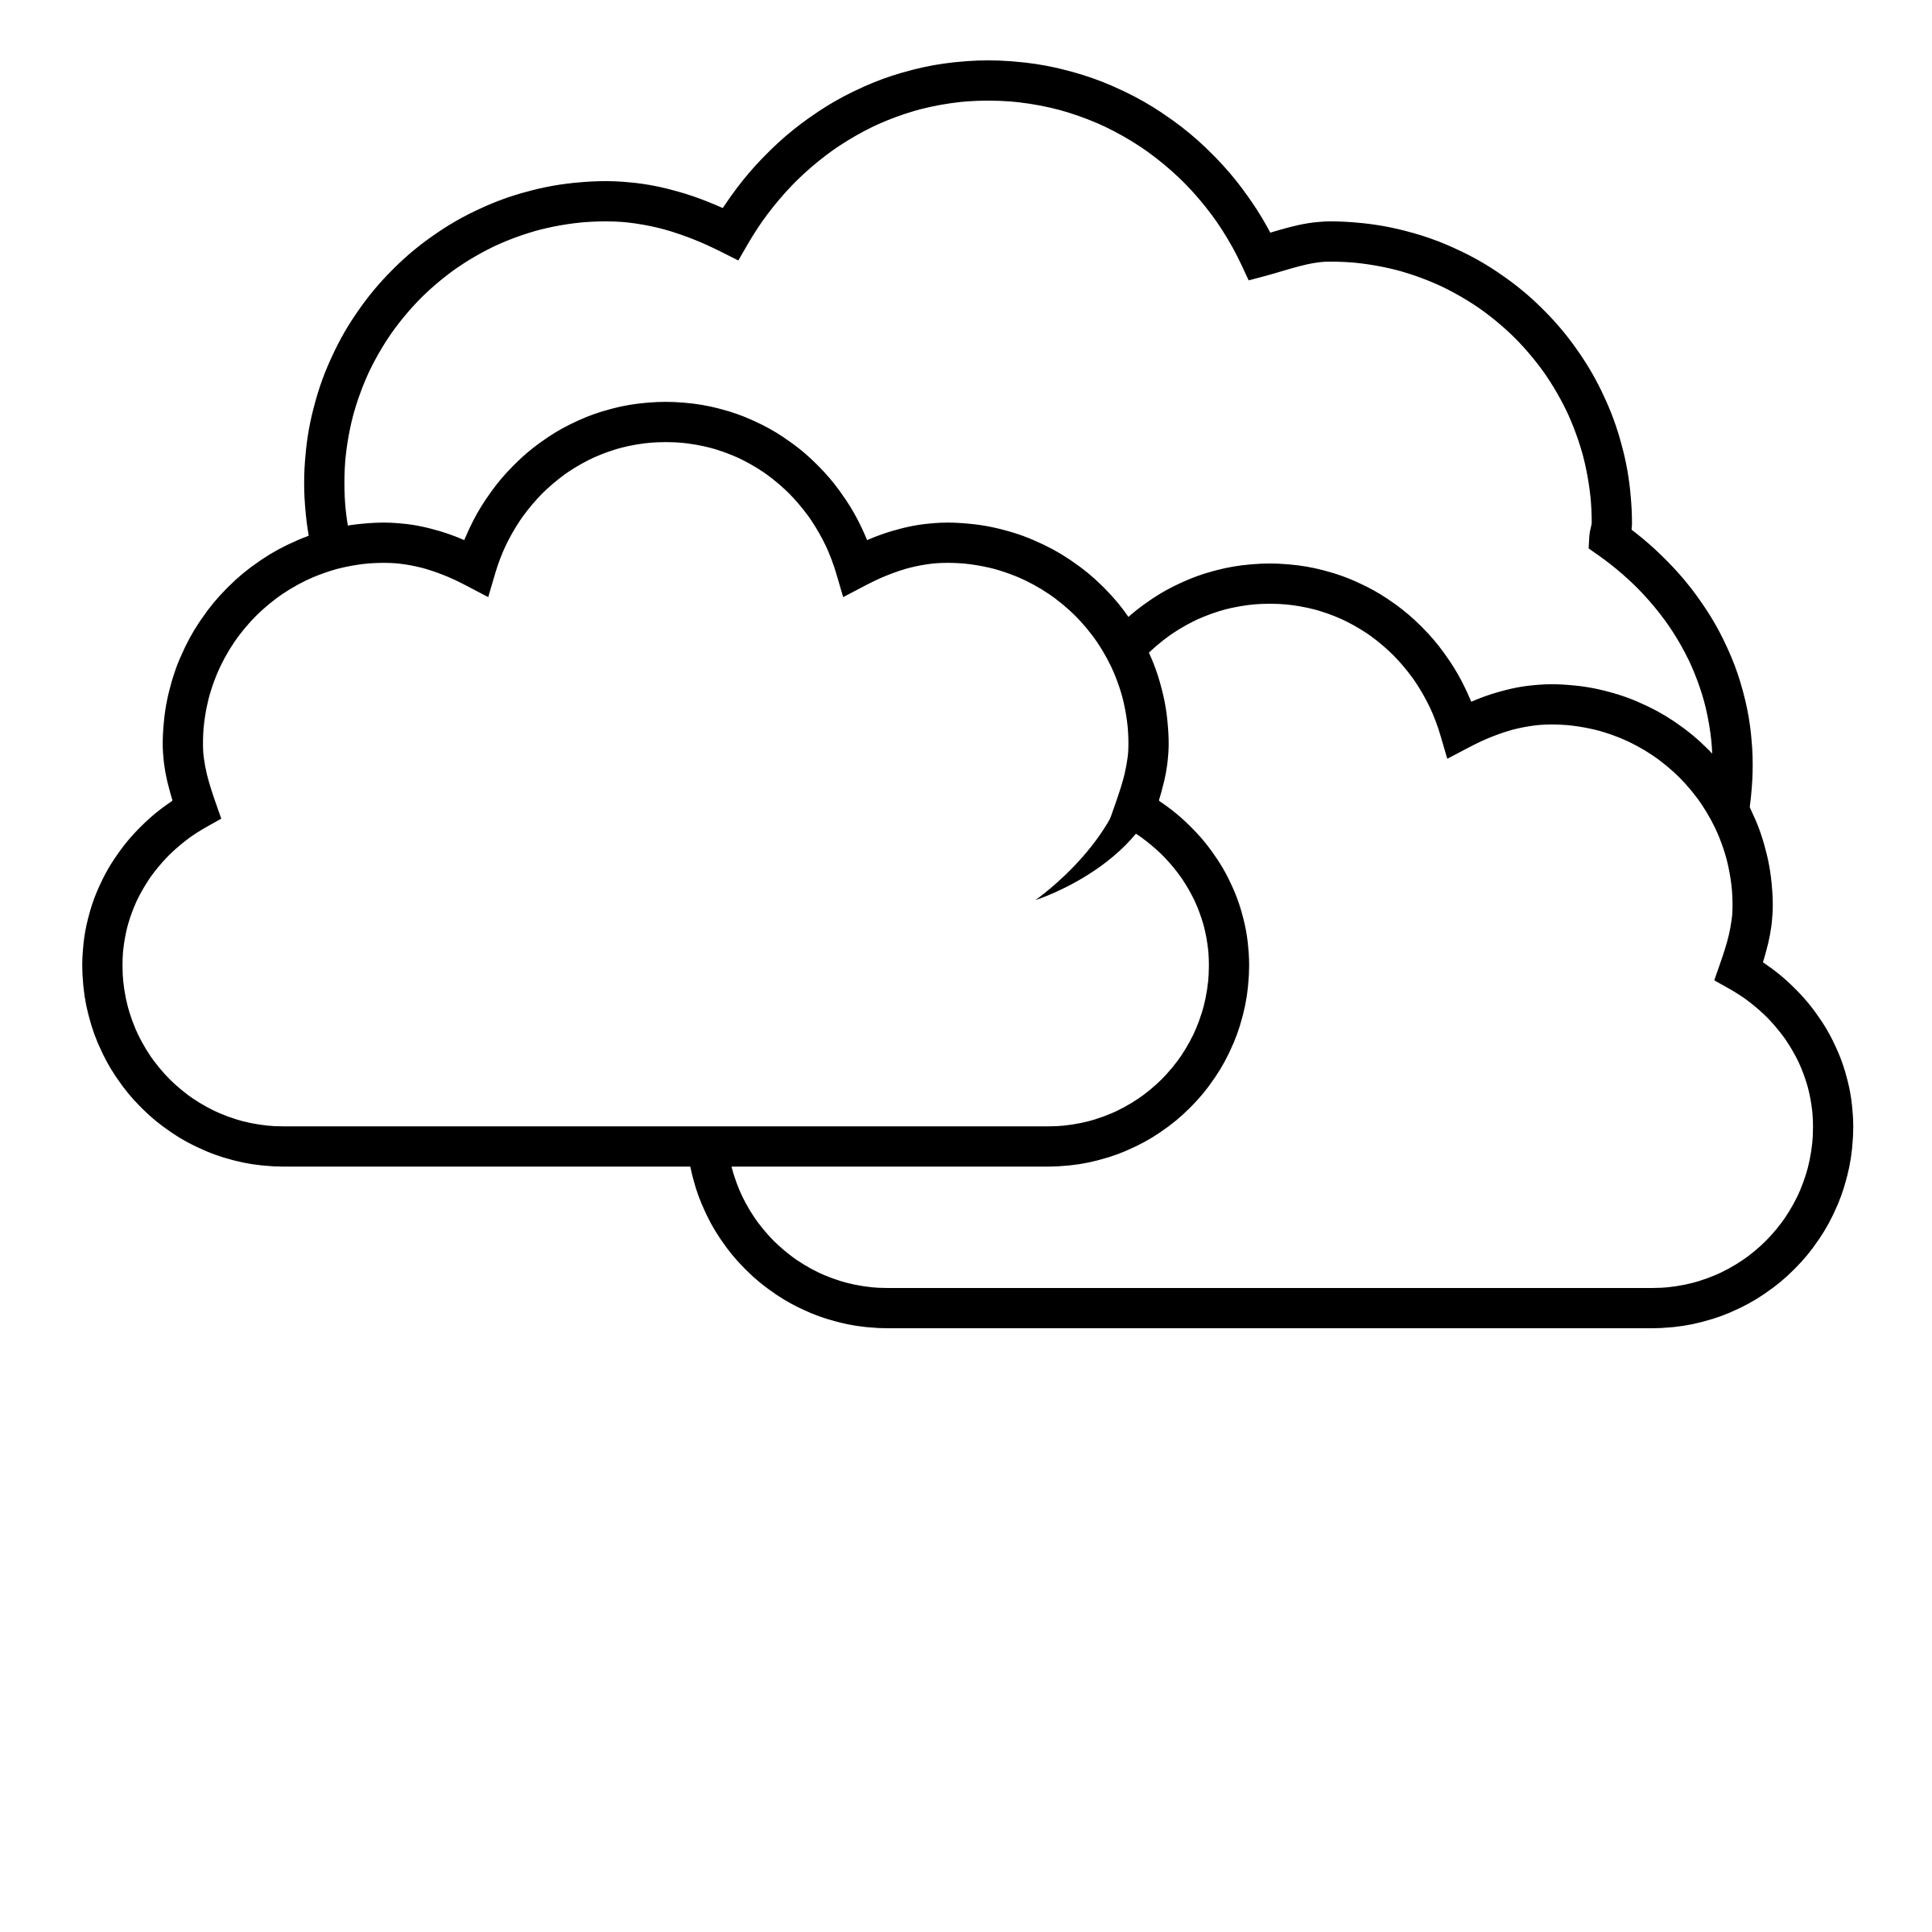 Clouds Clipart Black And White